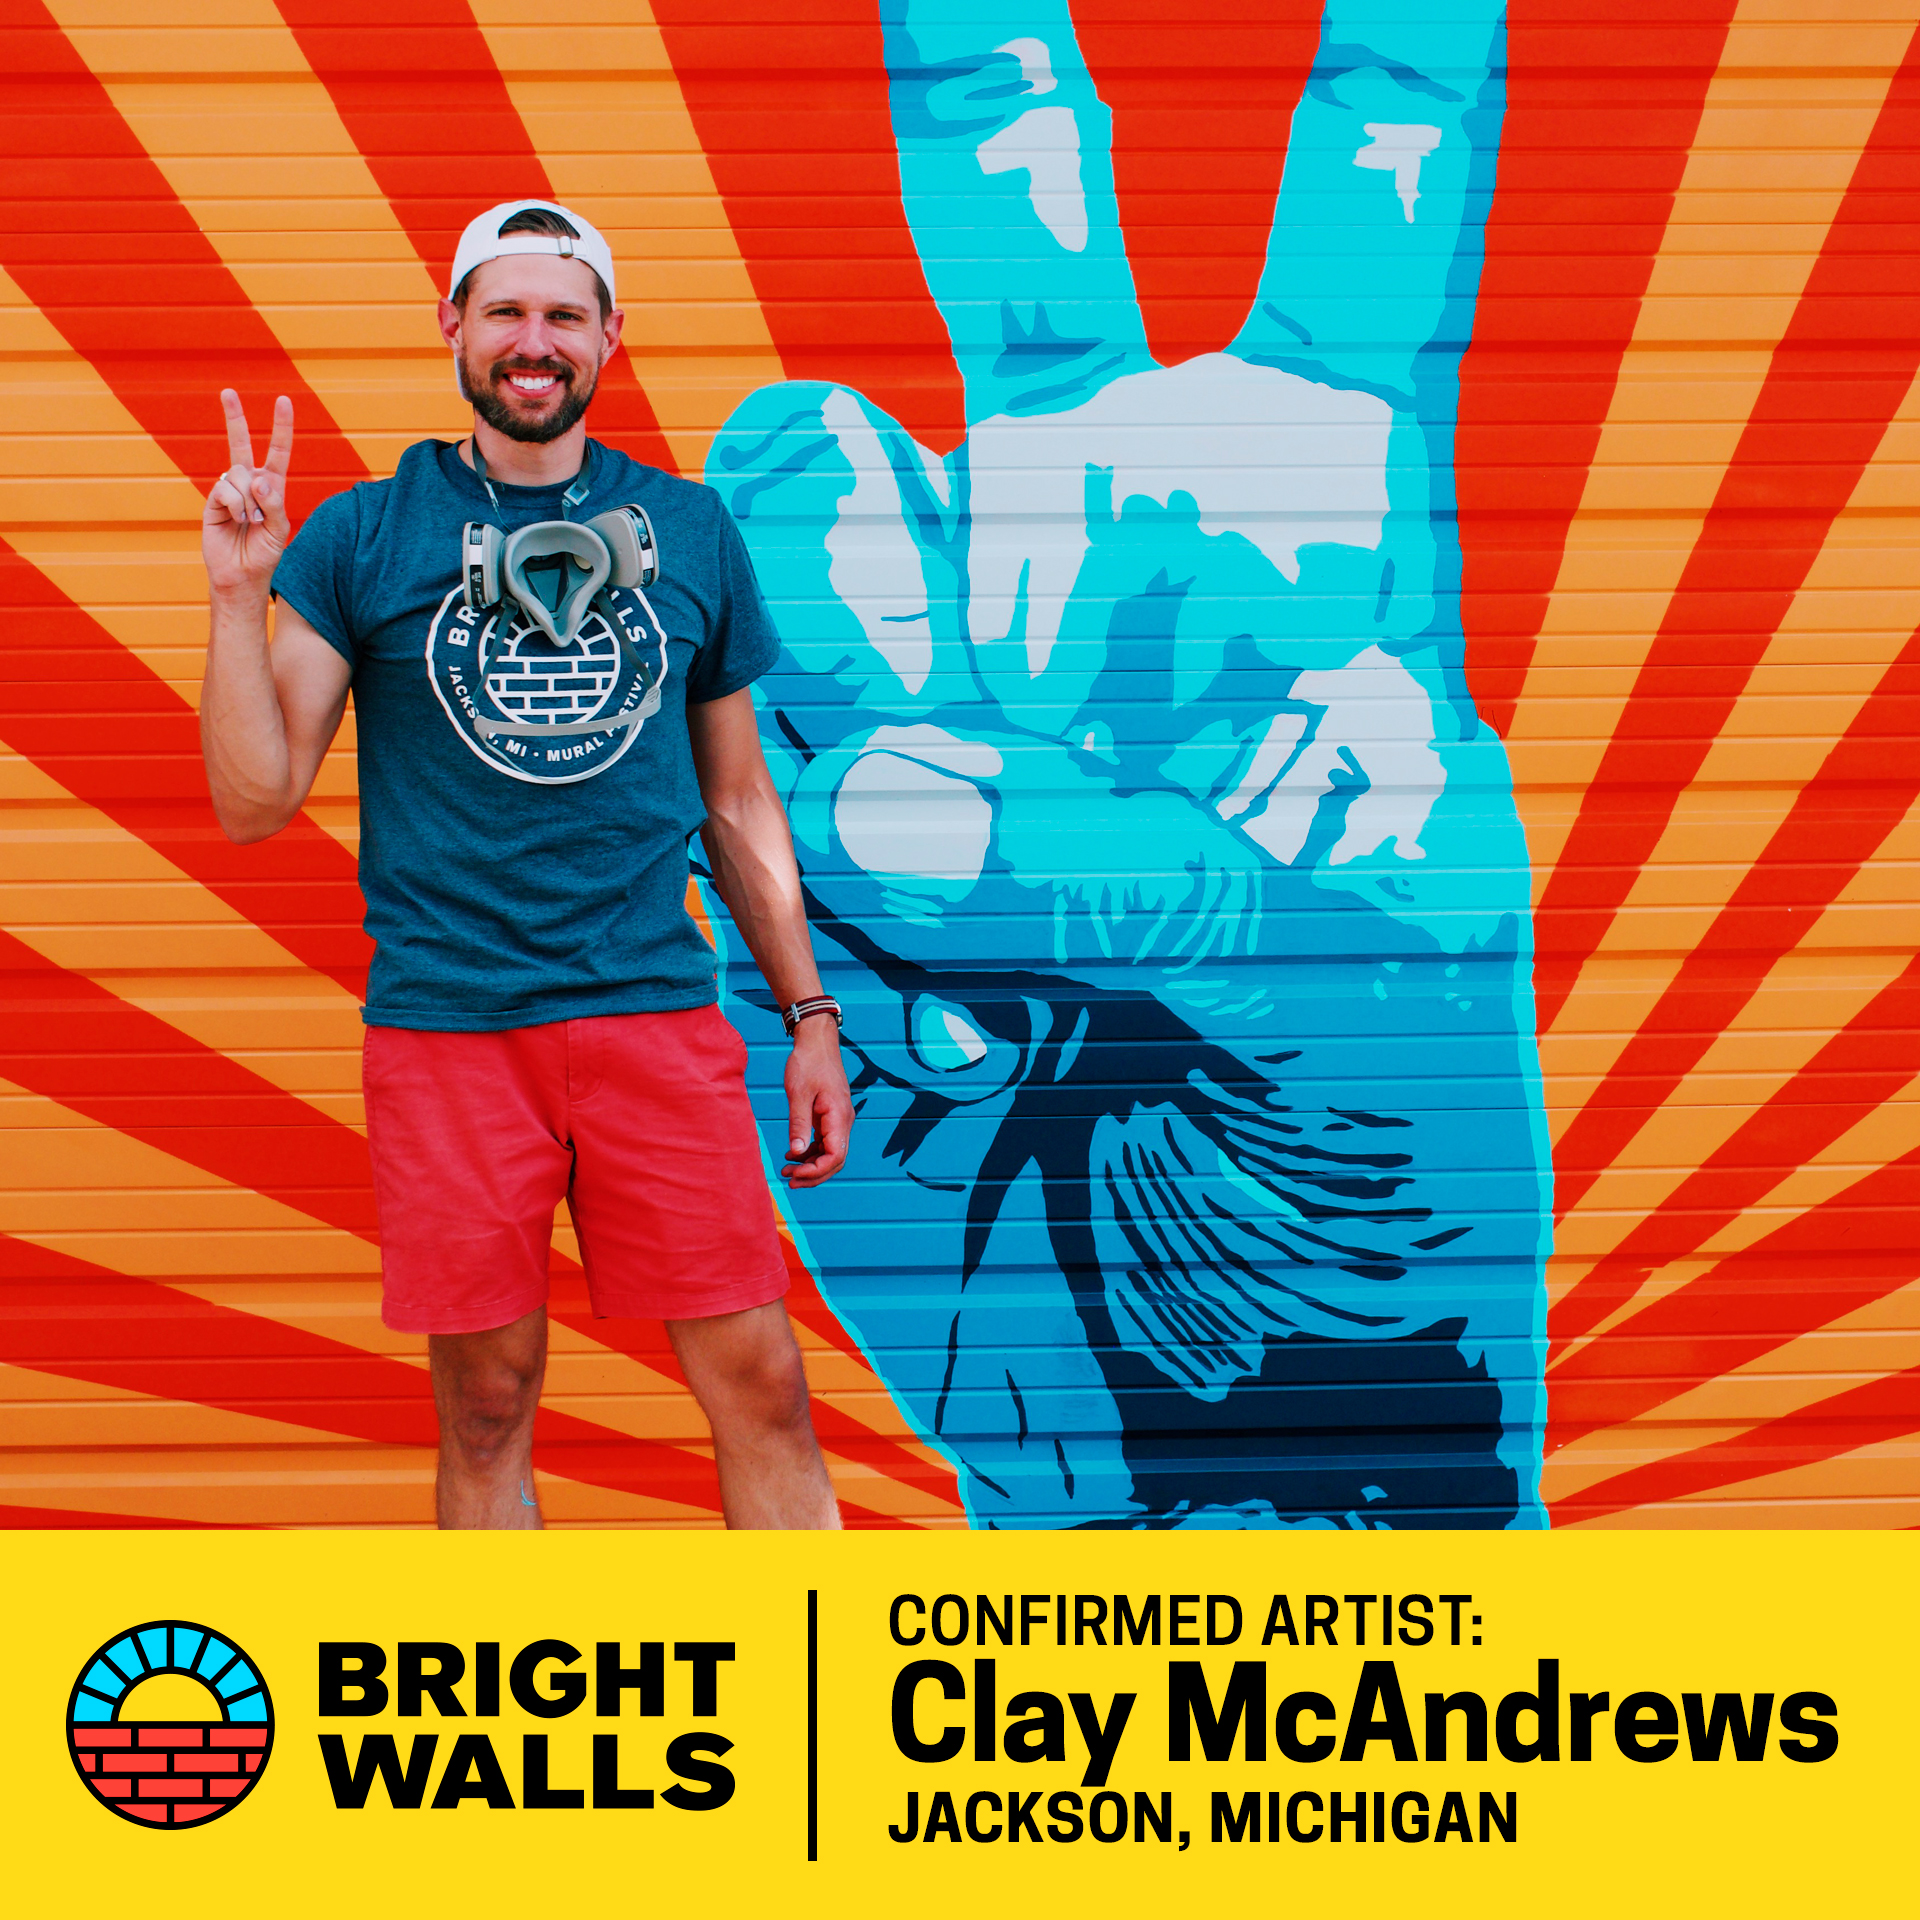 "Clay McAndrewsJackson, Michigan - Clay McAndrews was born and raised in Jackson, Michigan. His favorite class in high school was art, which he excelled in. He was voted the most ""Artsy Fartsy"" of his graduating class.He studied graphic design and advertising at Central Michigan University. His passion is branding and identity. His style of work is clean and simple with complimentary color palettes.This mural was Clay's first, and he loved doing it."